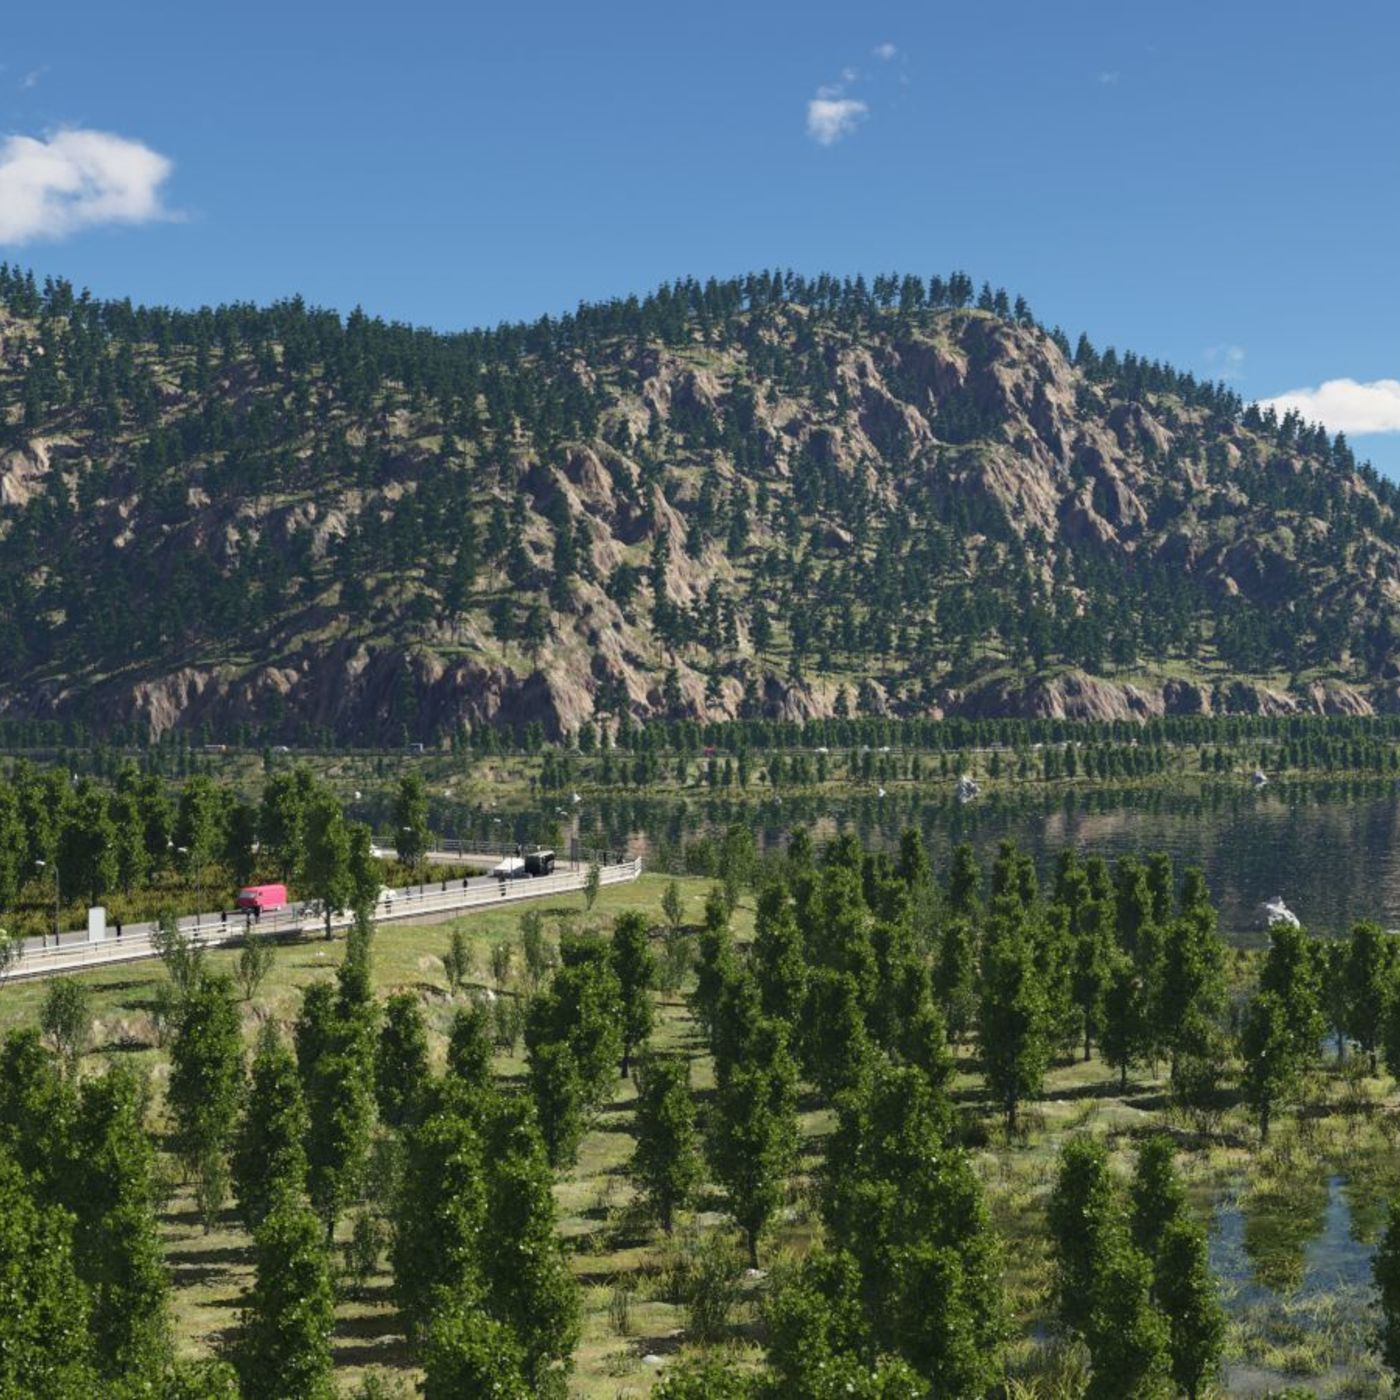 On the lakesides in Terragen